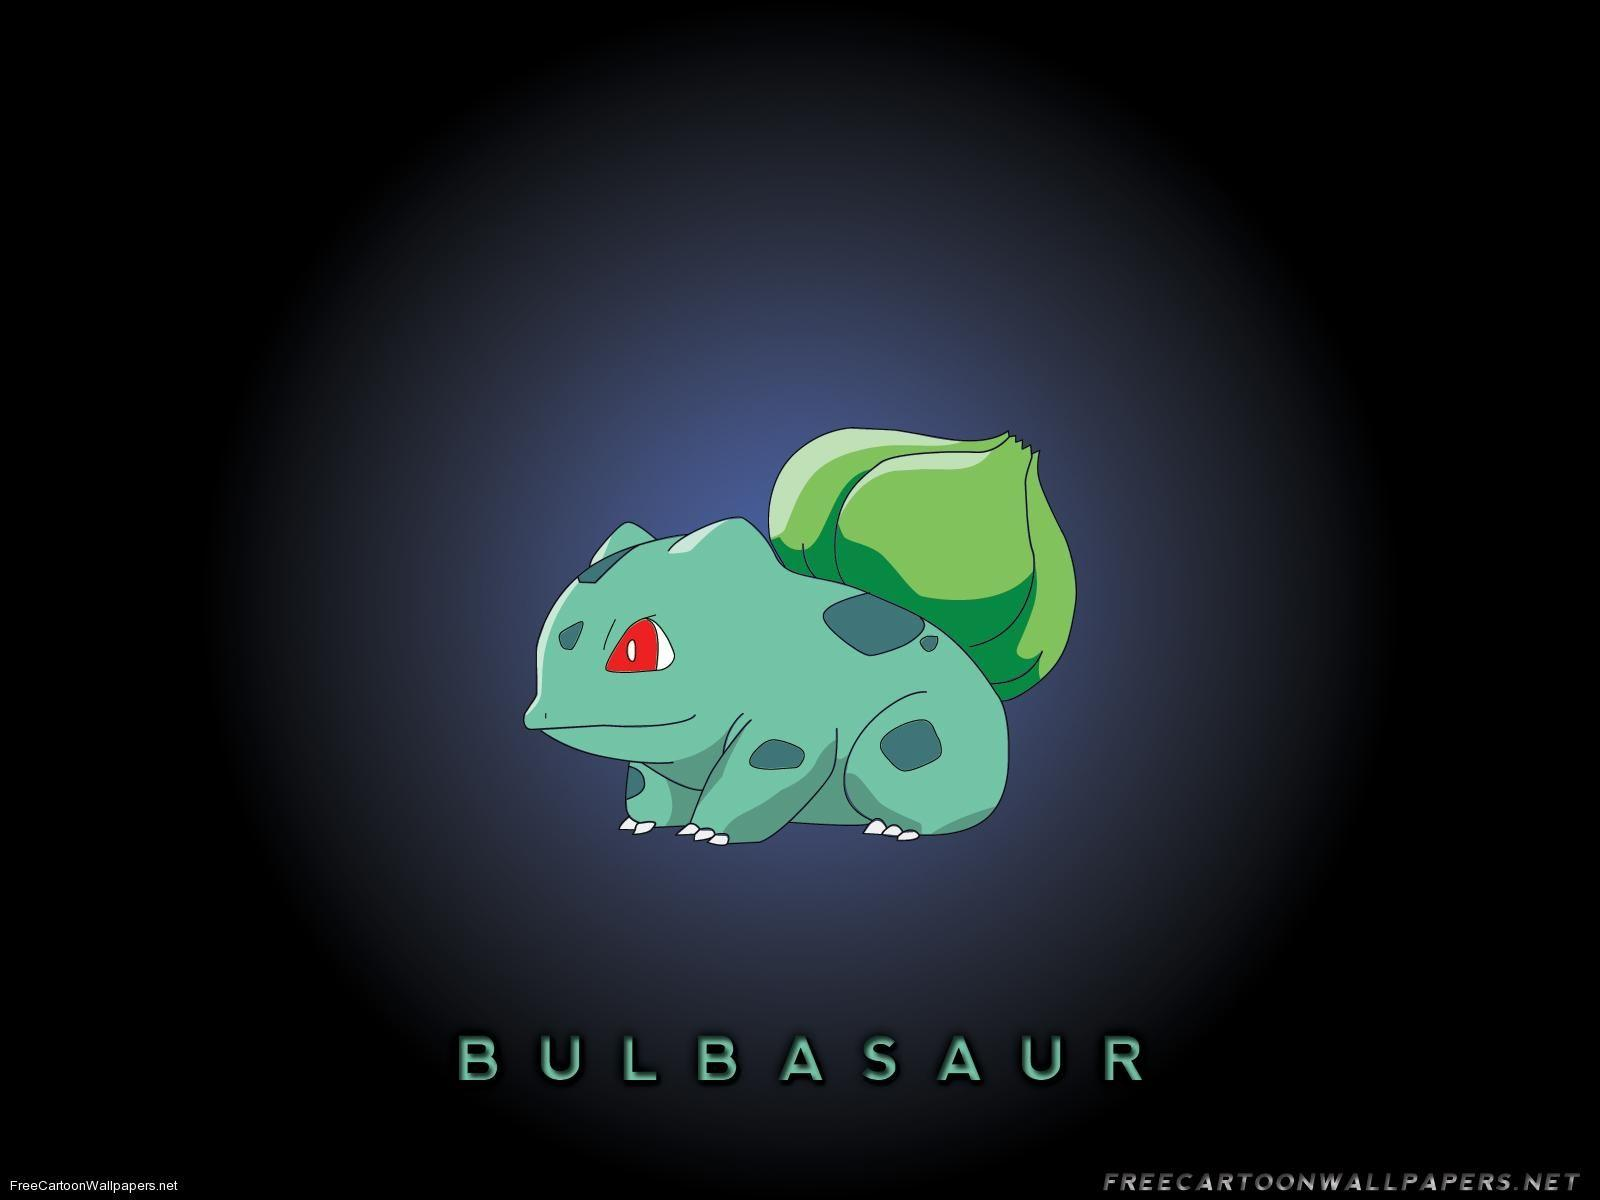 Bulbasaur Wallpaper By Hildegard | Mulierchile